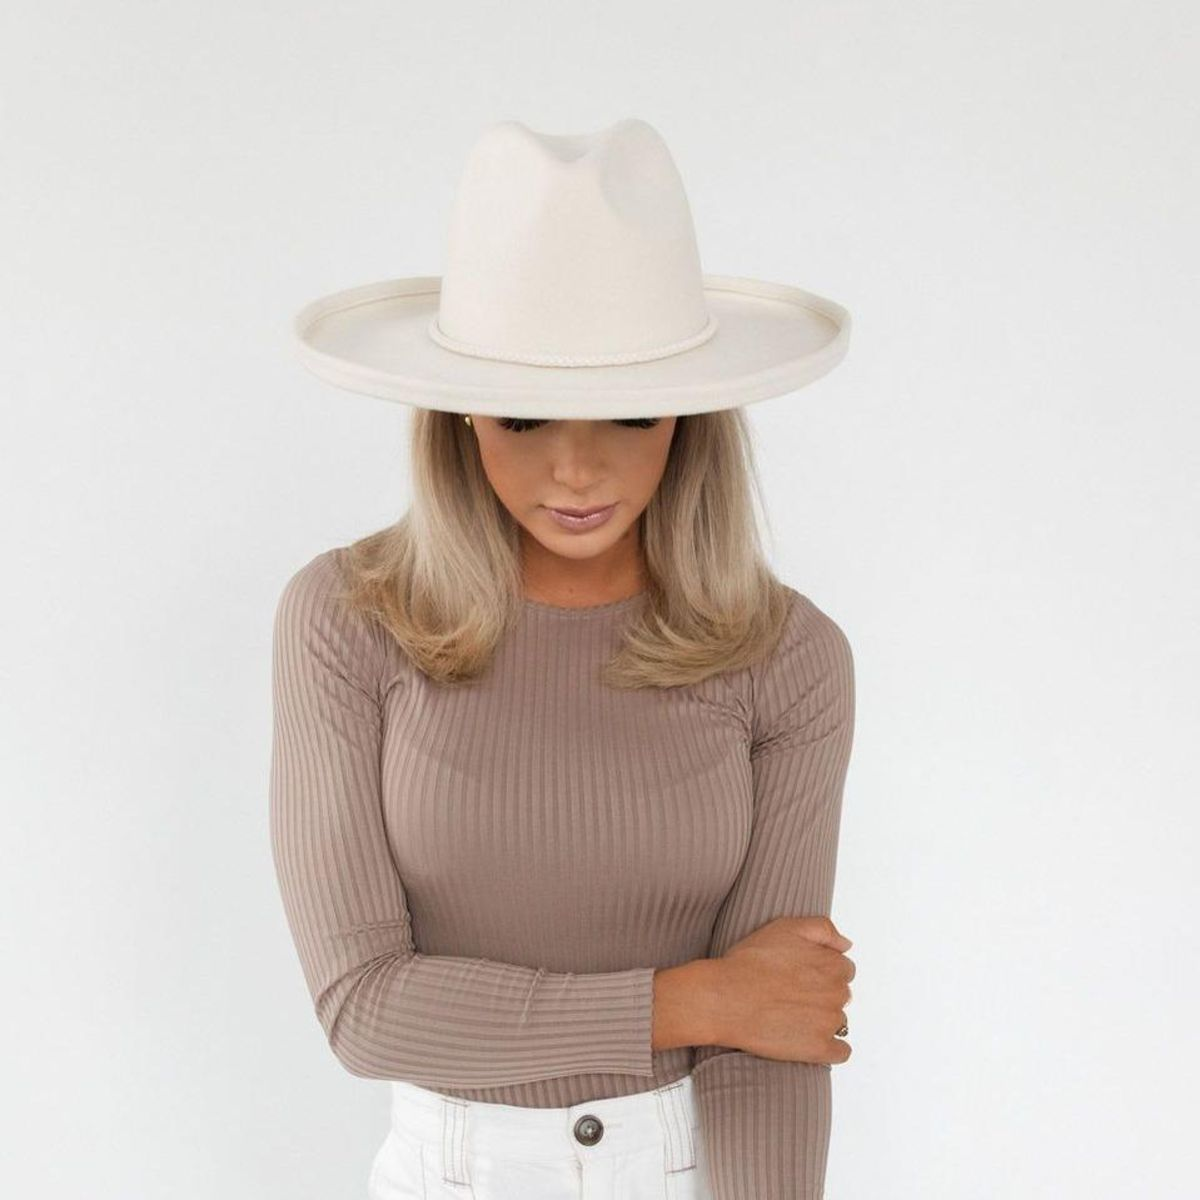 Load image into Gallery viewer, The Cara Loren Pencil Brim Hat - Off White